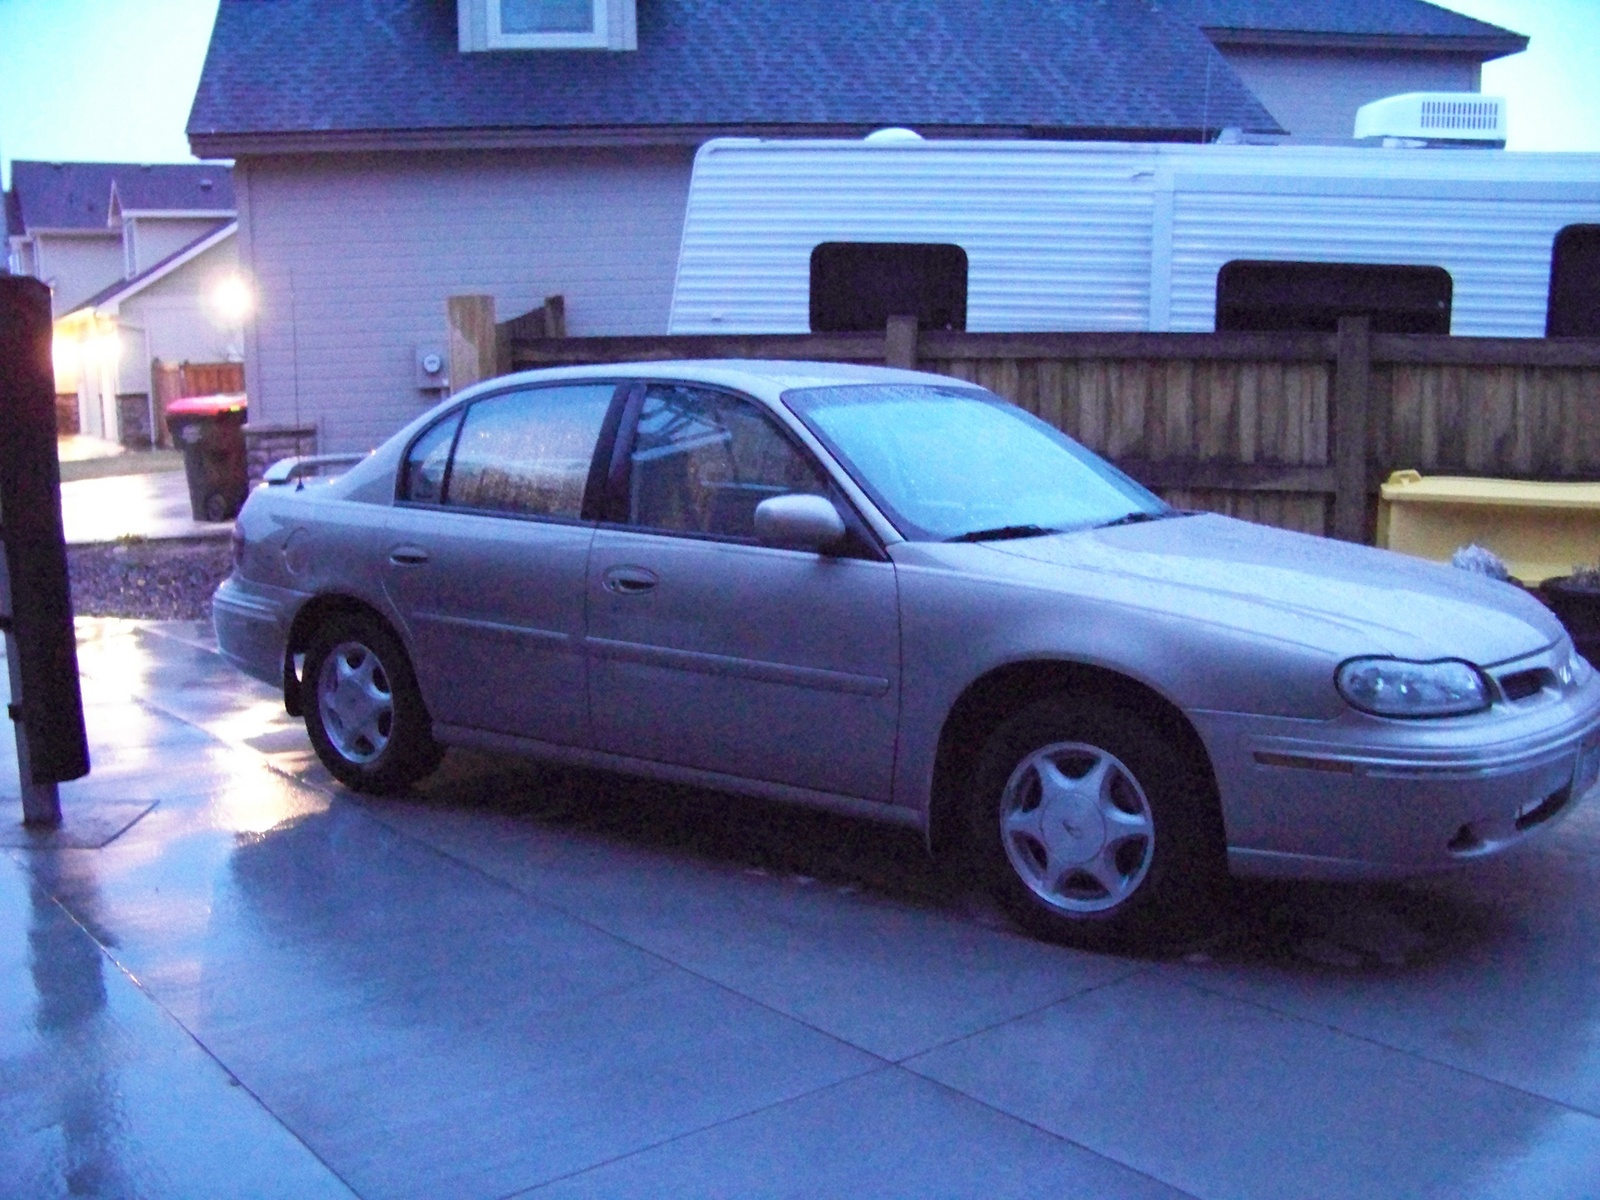 Picture of 1998 Oldsmobile Cutlass 4 Dr GL Sedan